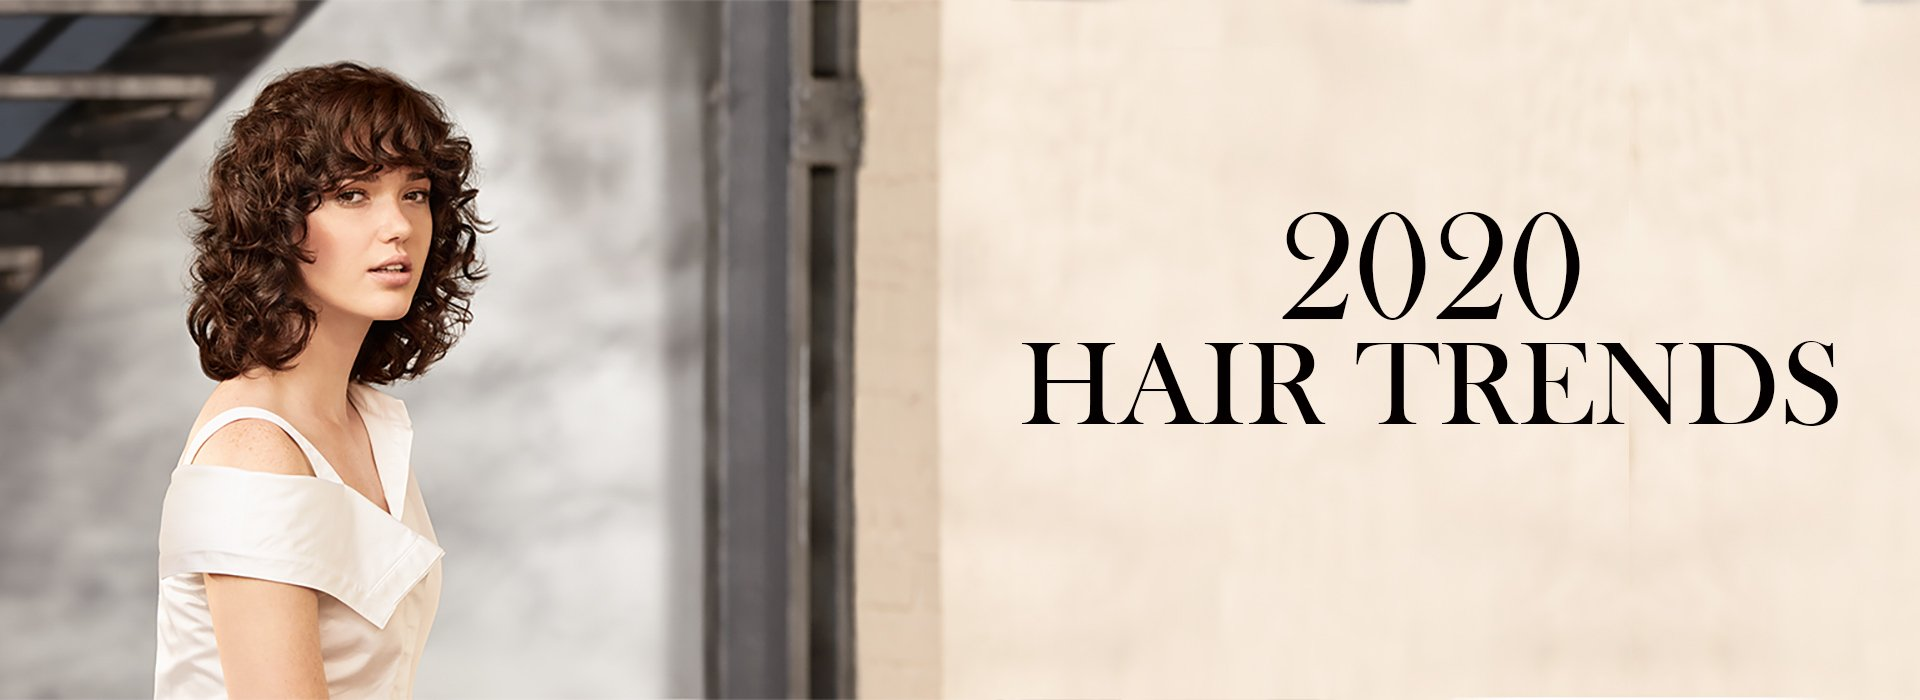 2020 Hair Trends Lore Hairdressing Salon in North Baddlesley